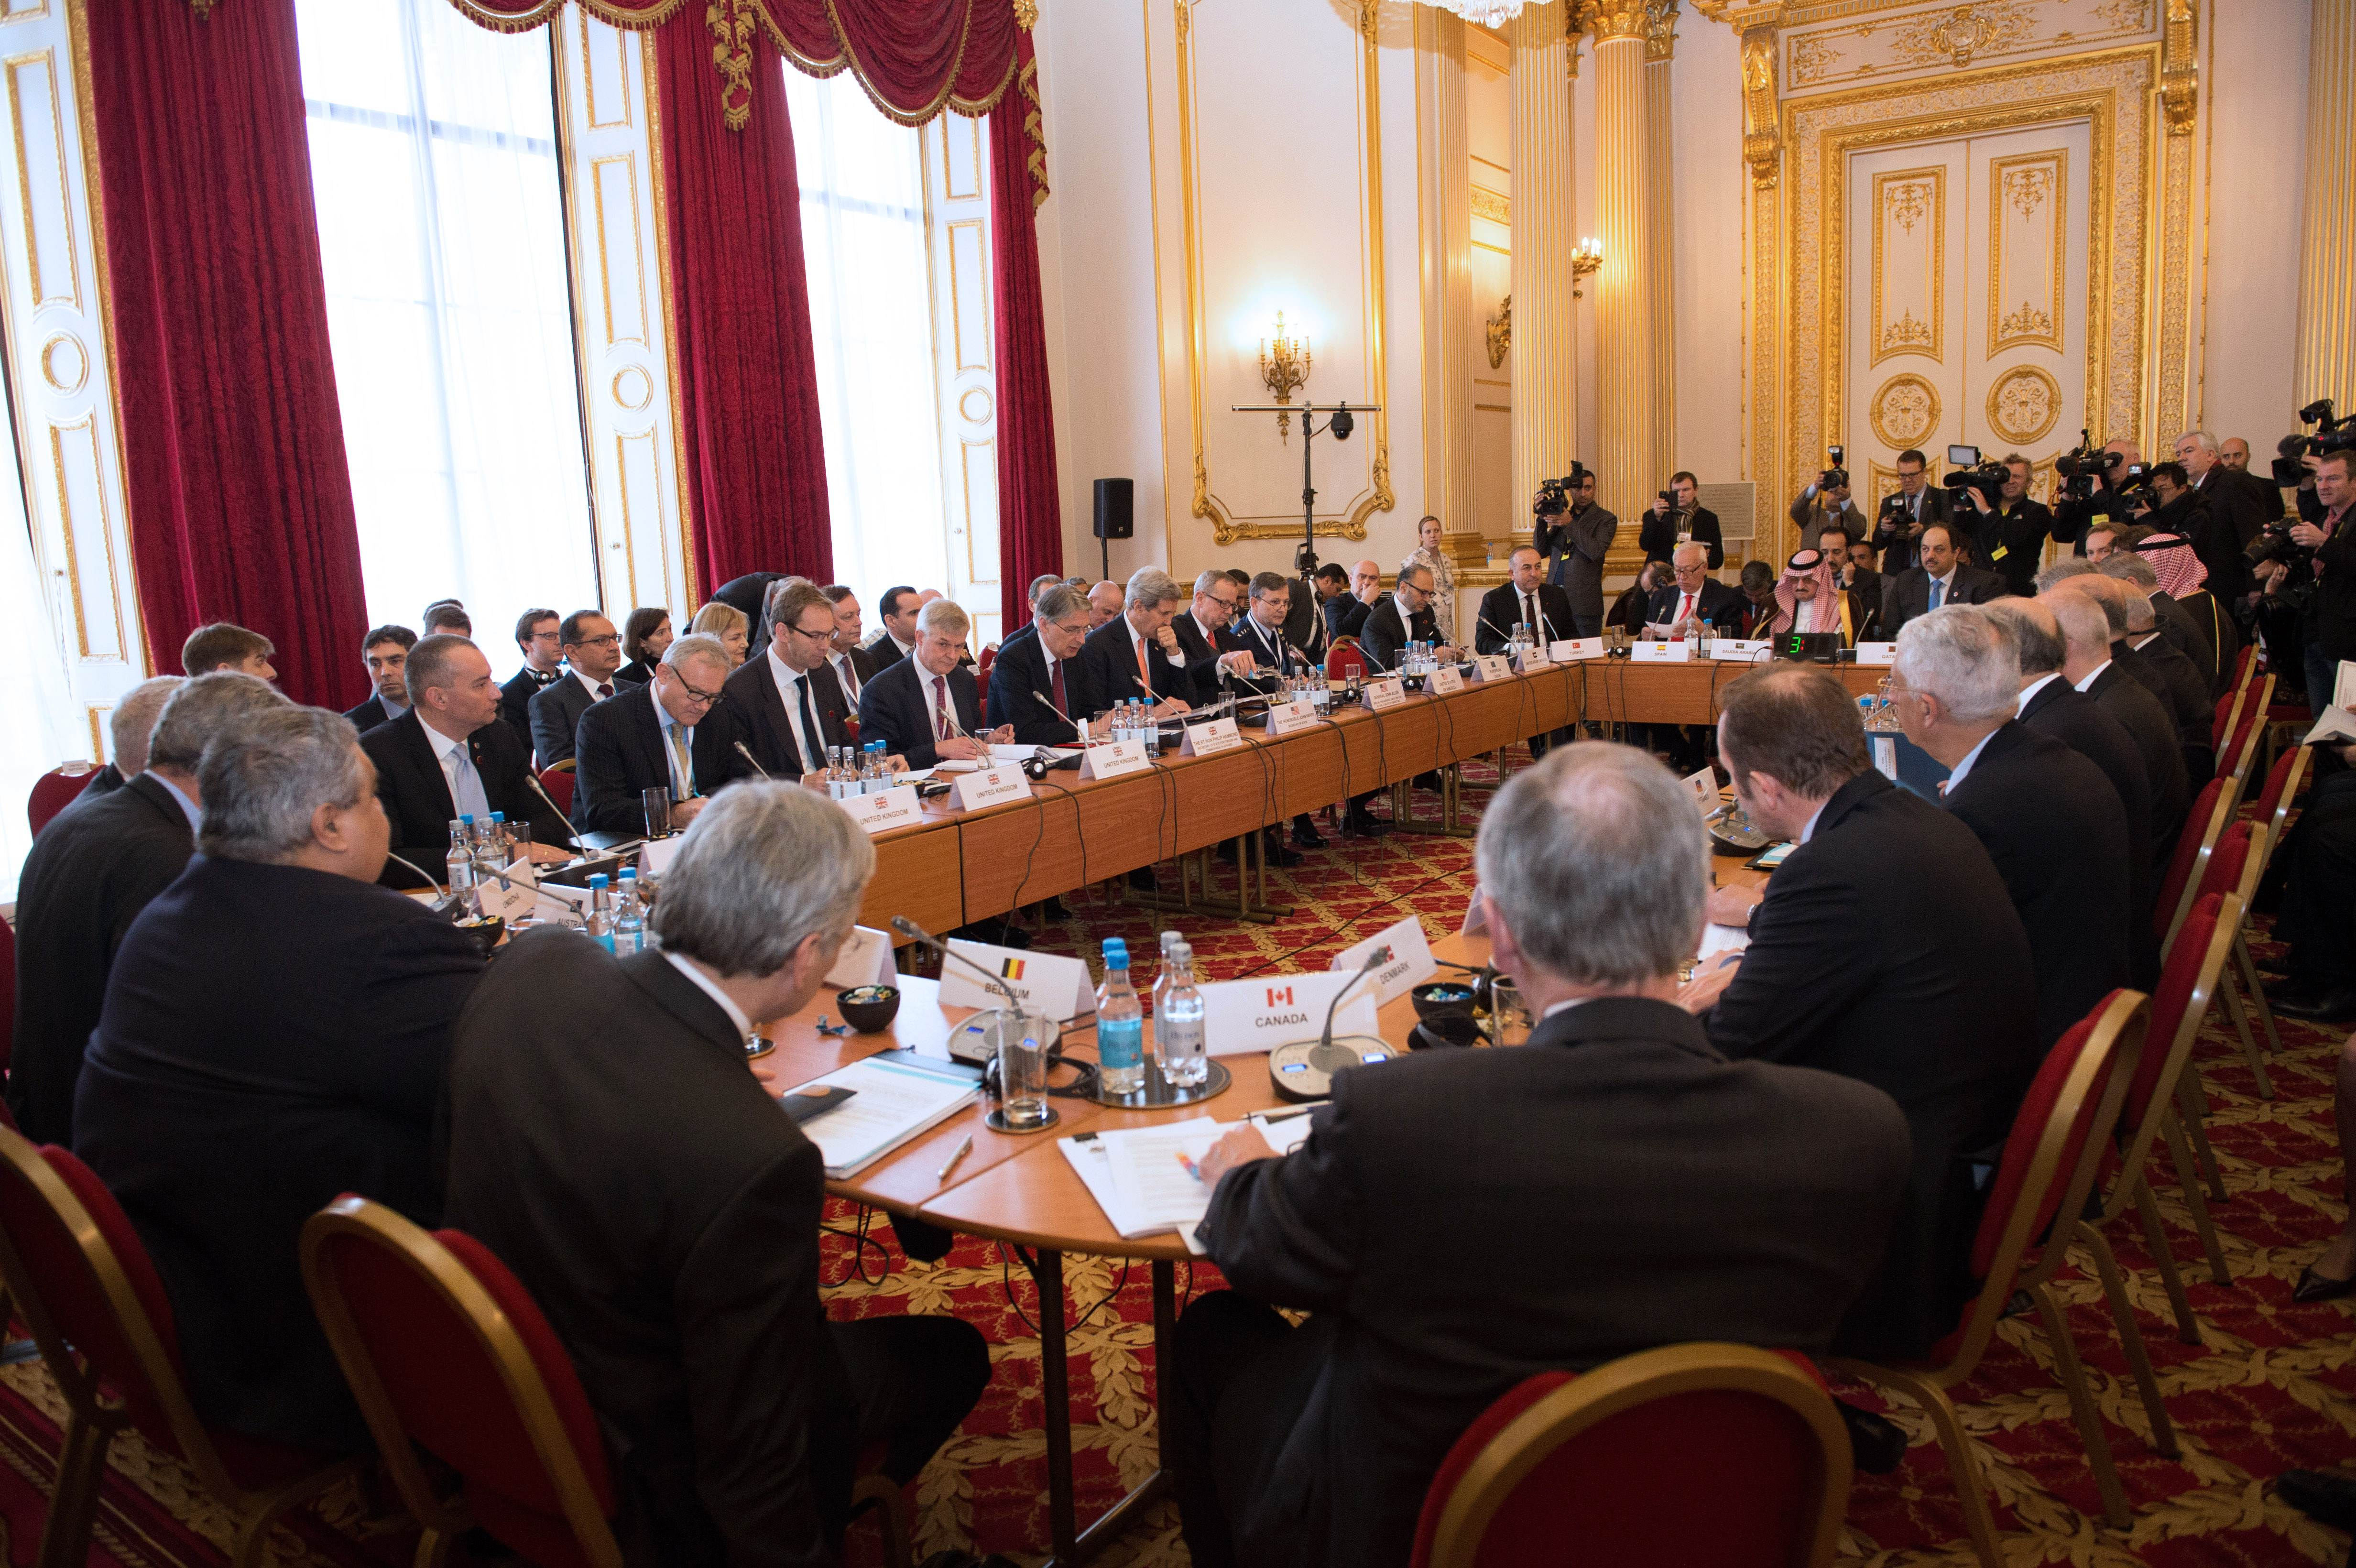 Top officials from 21 countries in the anti-Islamic State coalition meet at Lancaster House in London on Thursday to kick off talks on pushing back Islamic State group militants in Iraq and Syria and tackling the growing threat of homegrown extremists in Europe. | AFP-JIJI